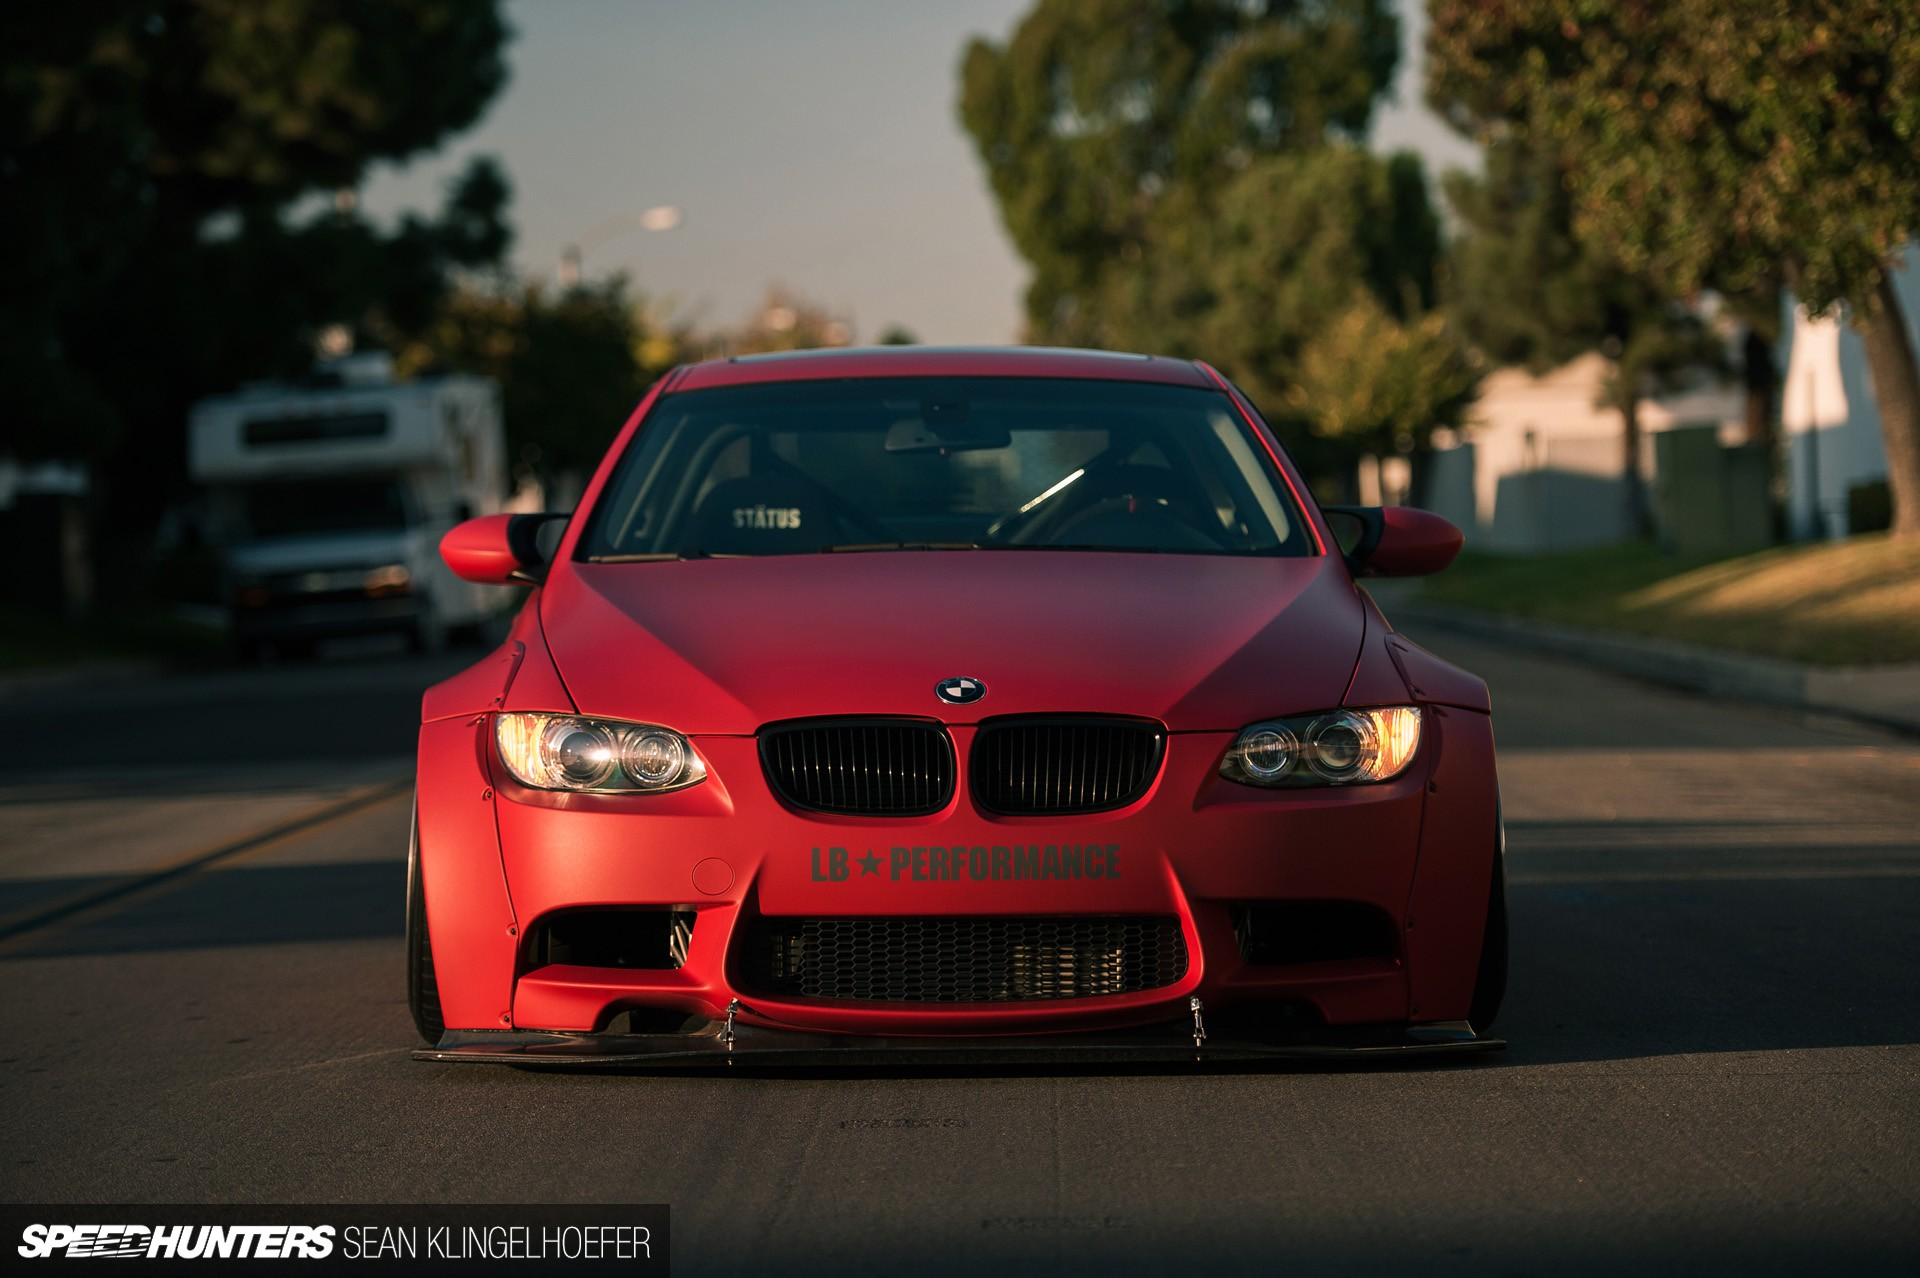 Girls And Lowrider Wallpaper Pic Bmw Bmw E92 Bmw E92 M3 Lb Performance Speed Hunters